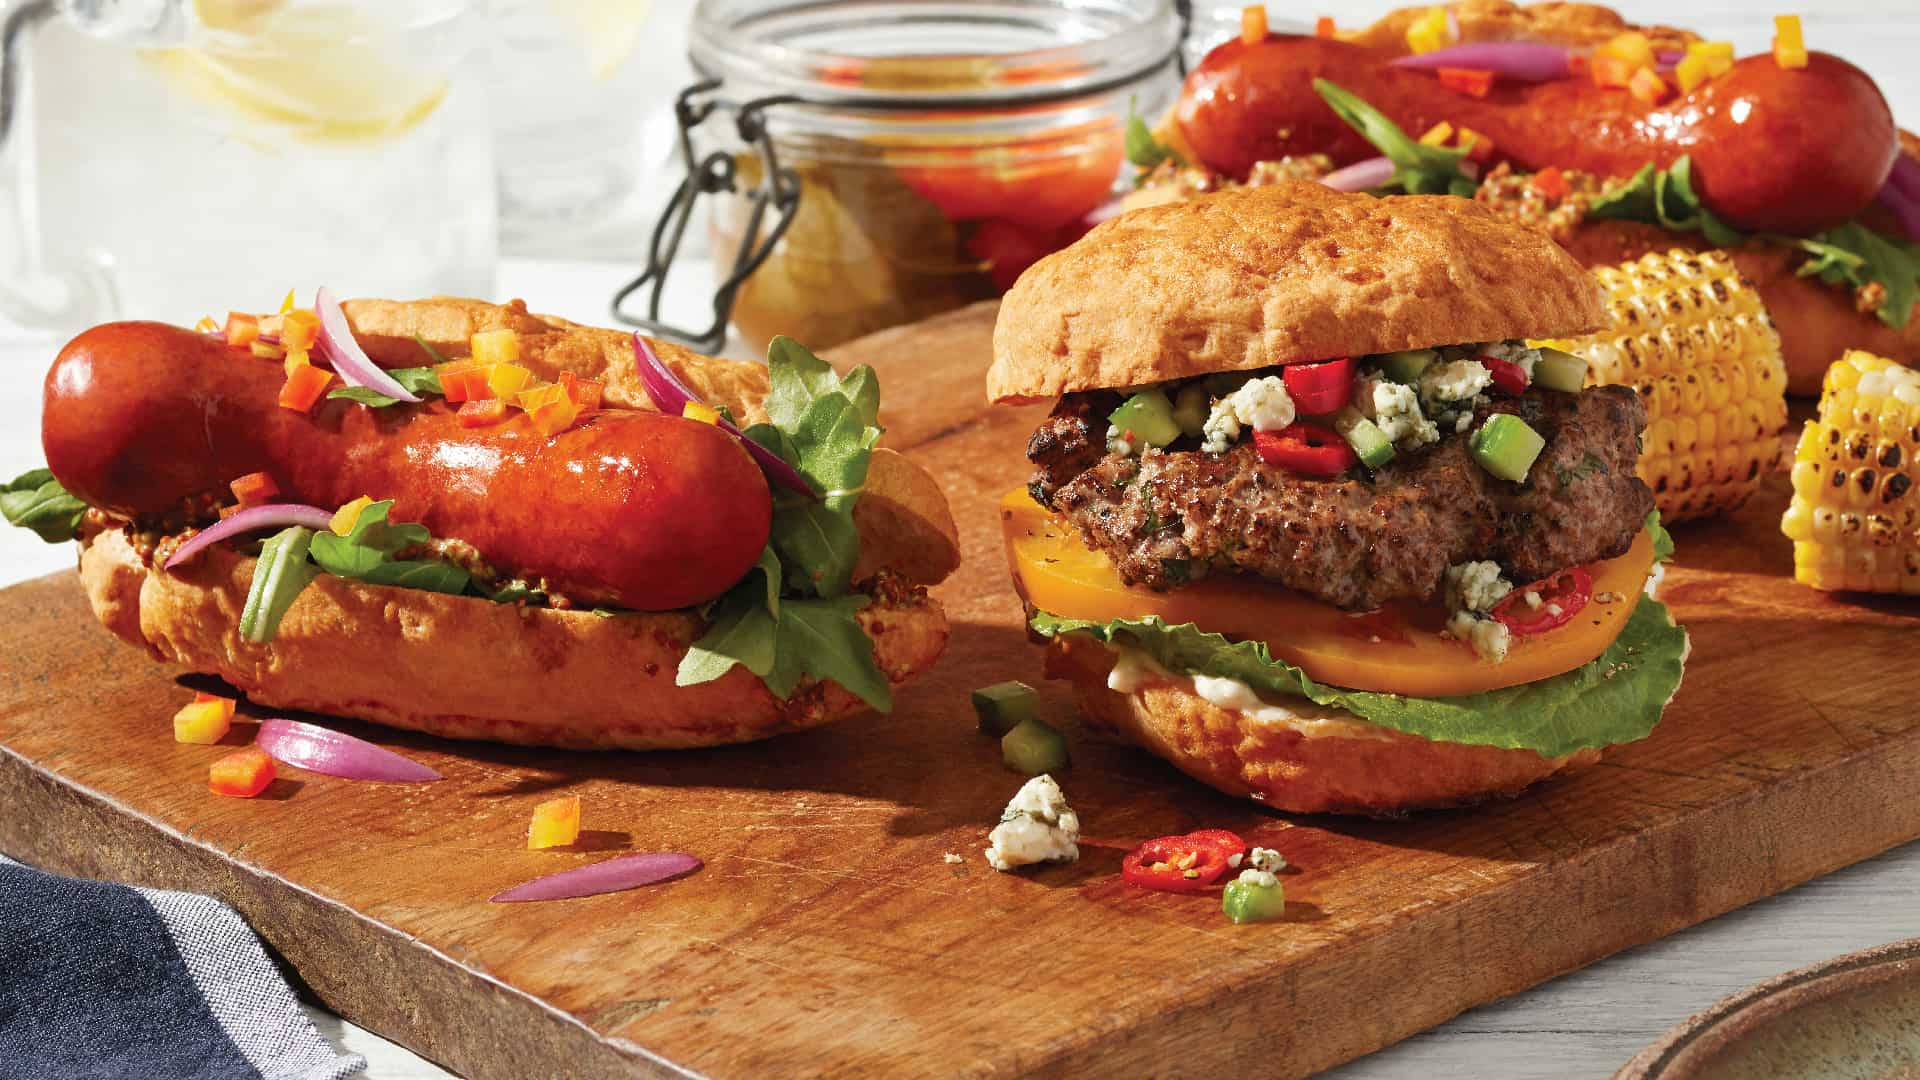 Top Off Summer with the Best Gluten-Free Barbecue